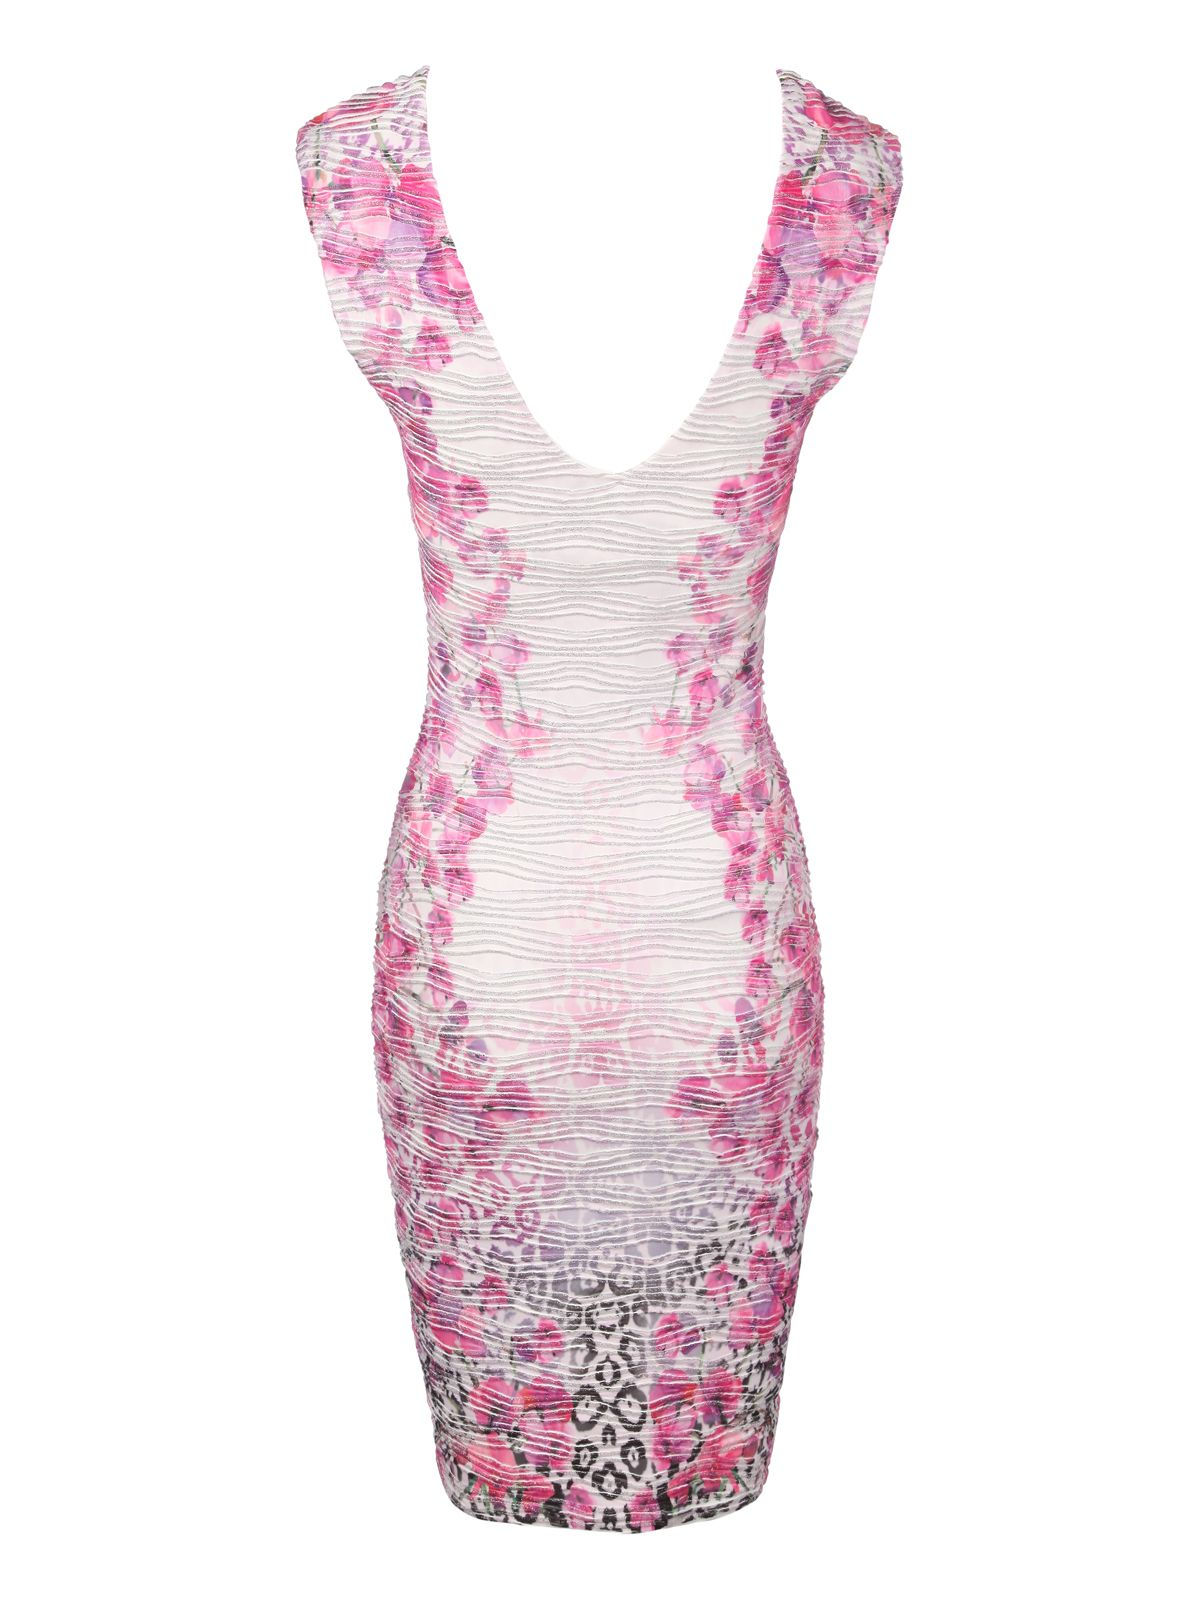 Floral print textured bodycon dress